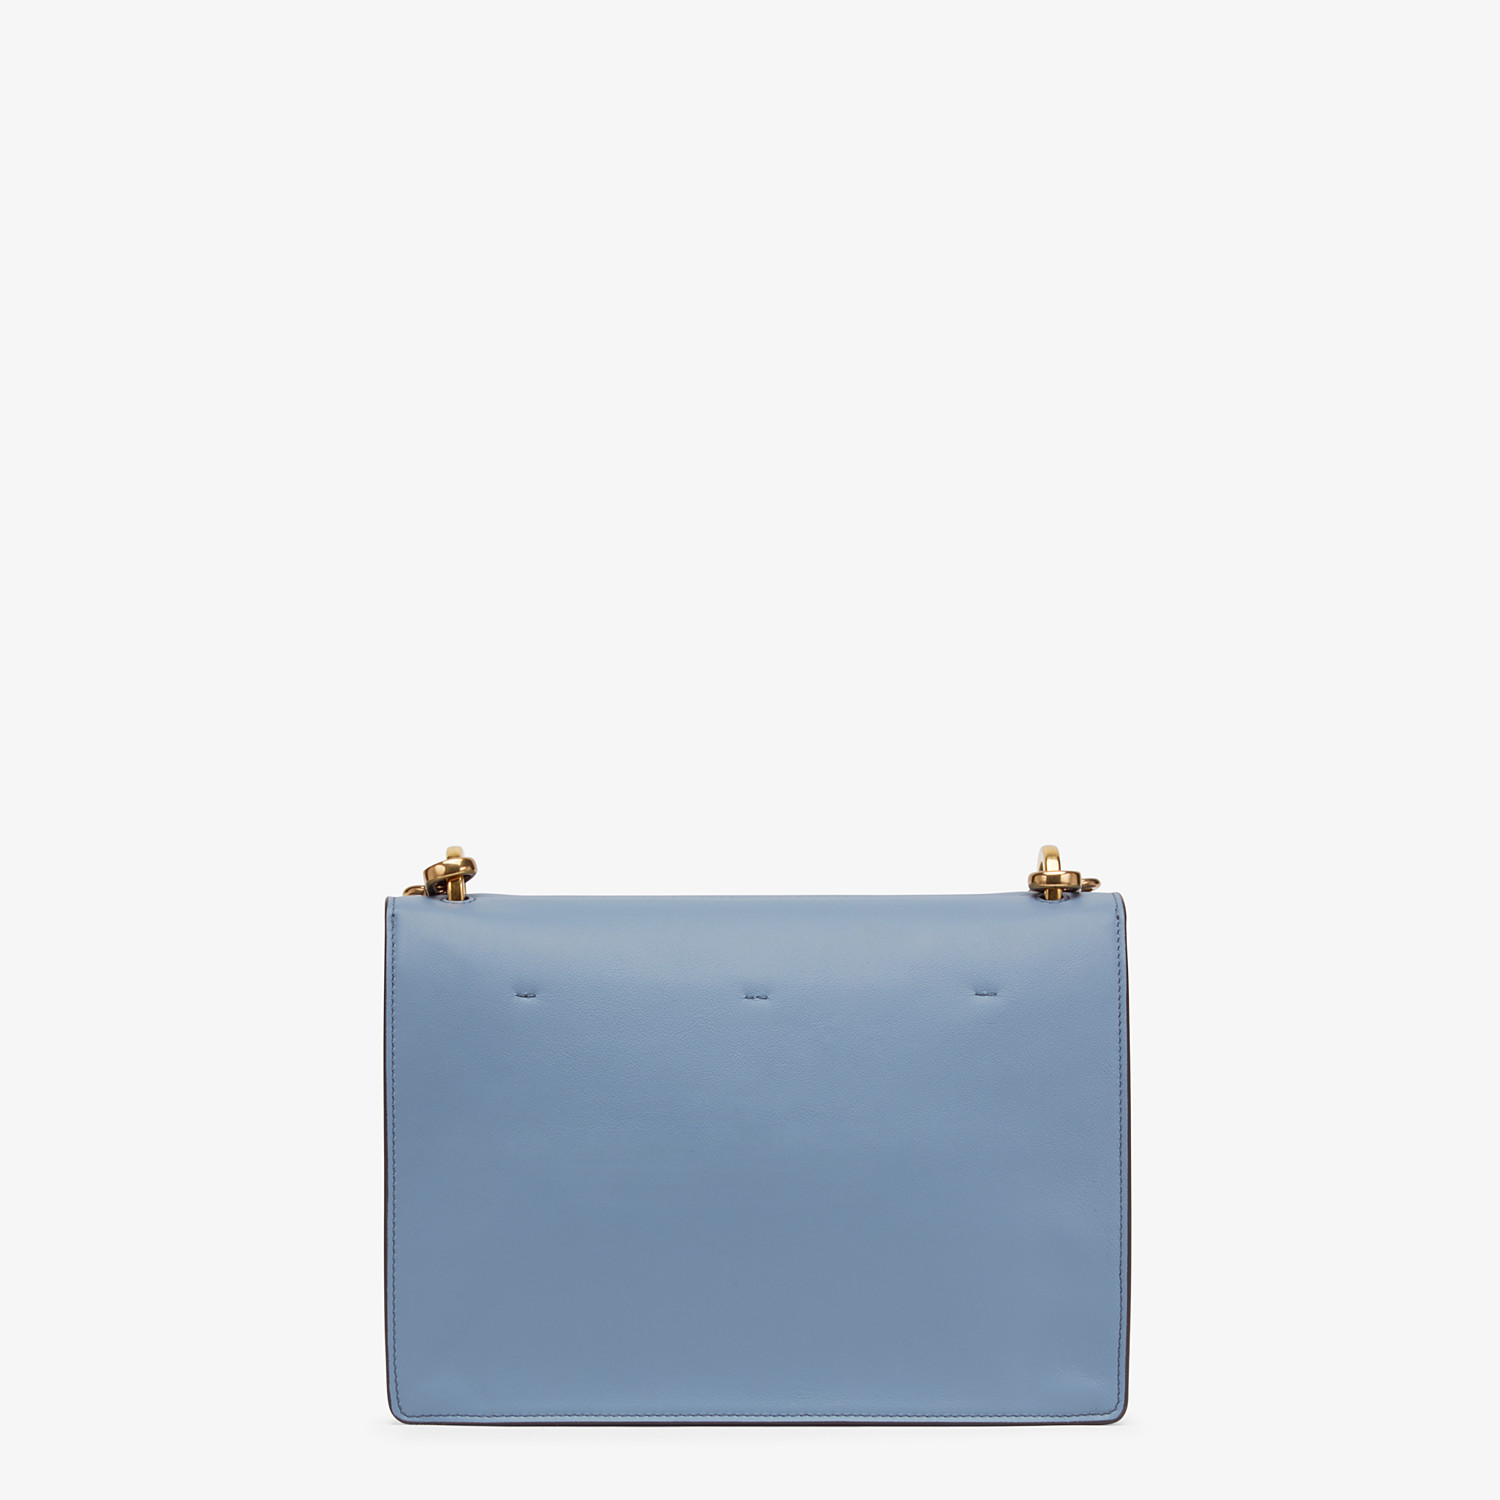 FENDI KAN U - Light blue leather bag - view 4 detail